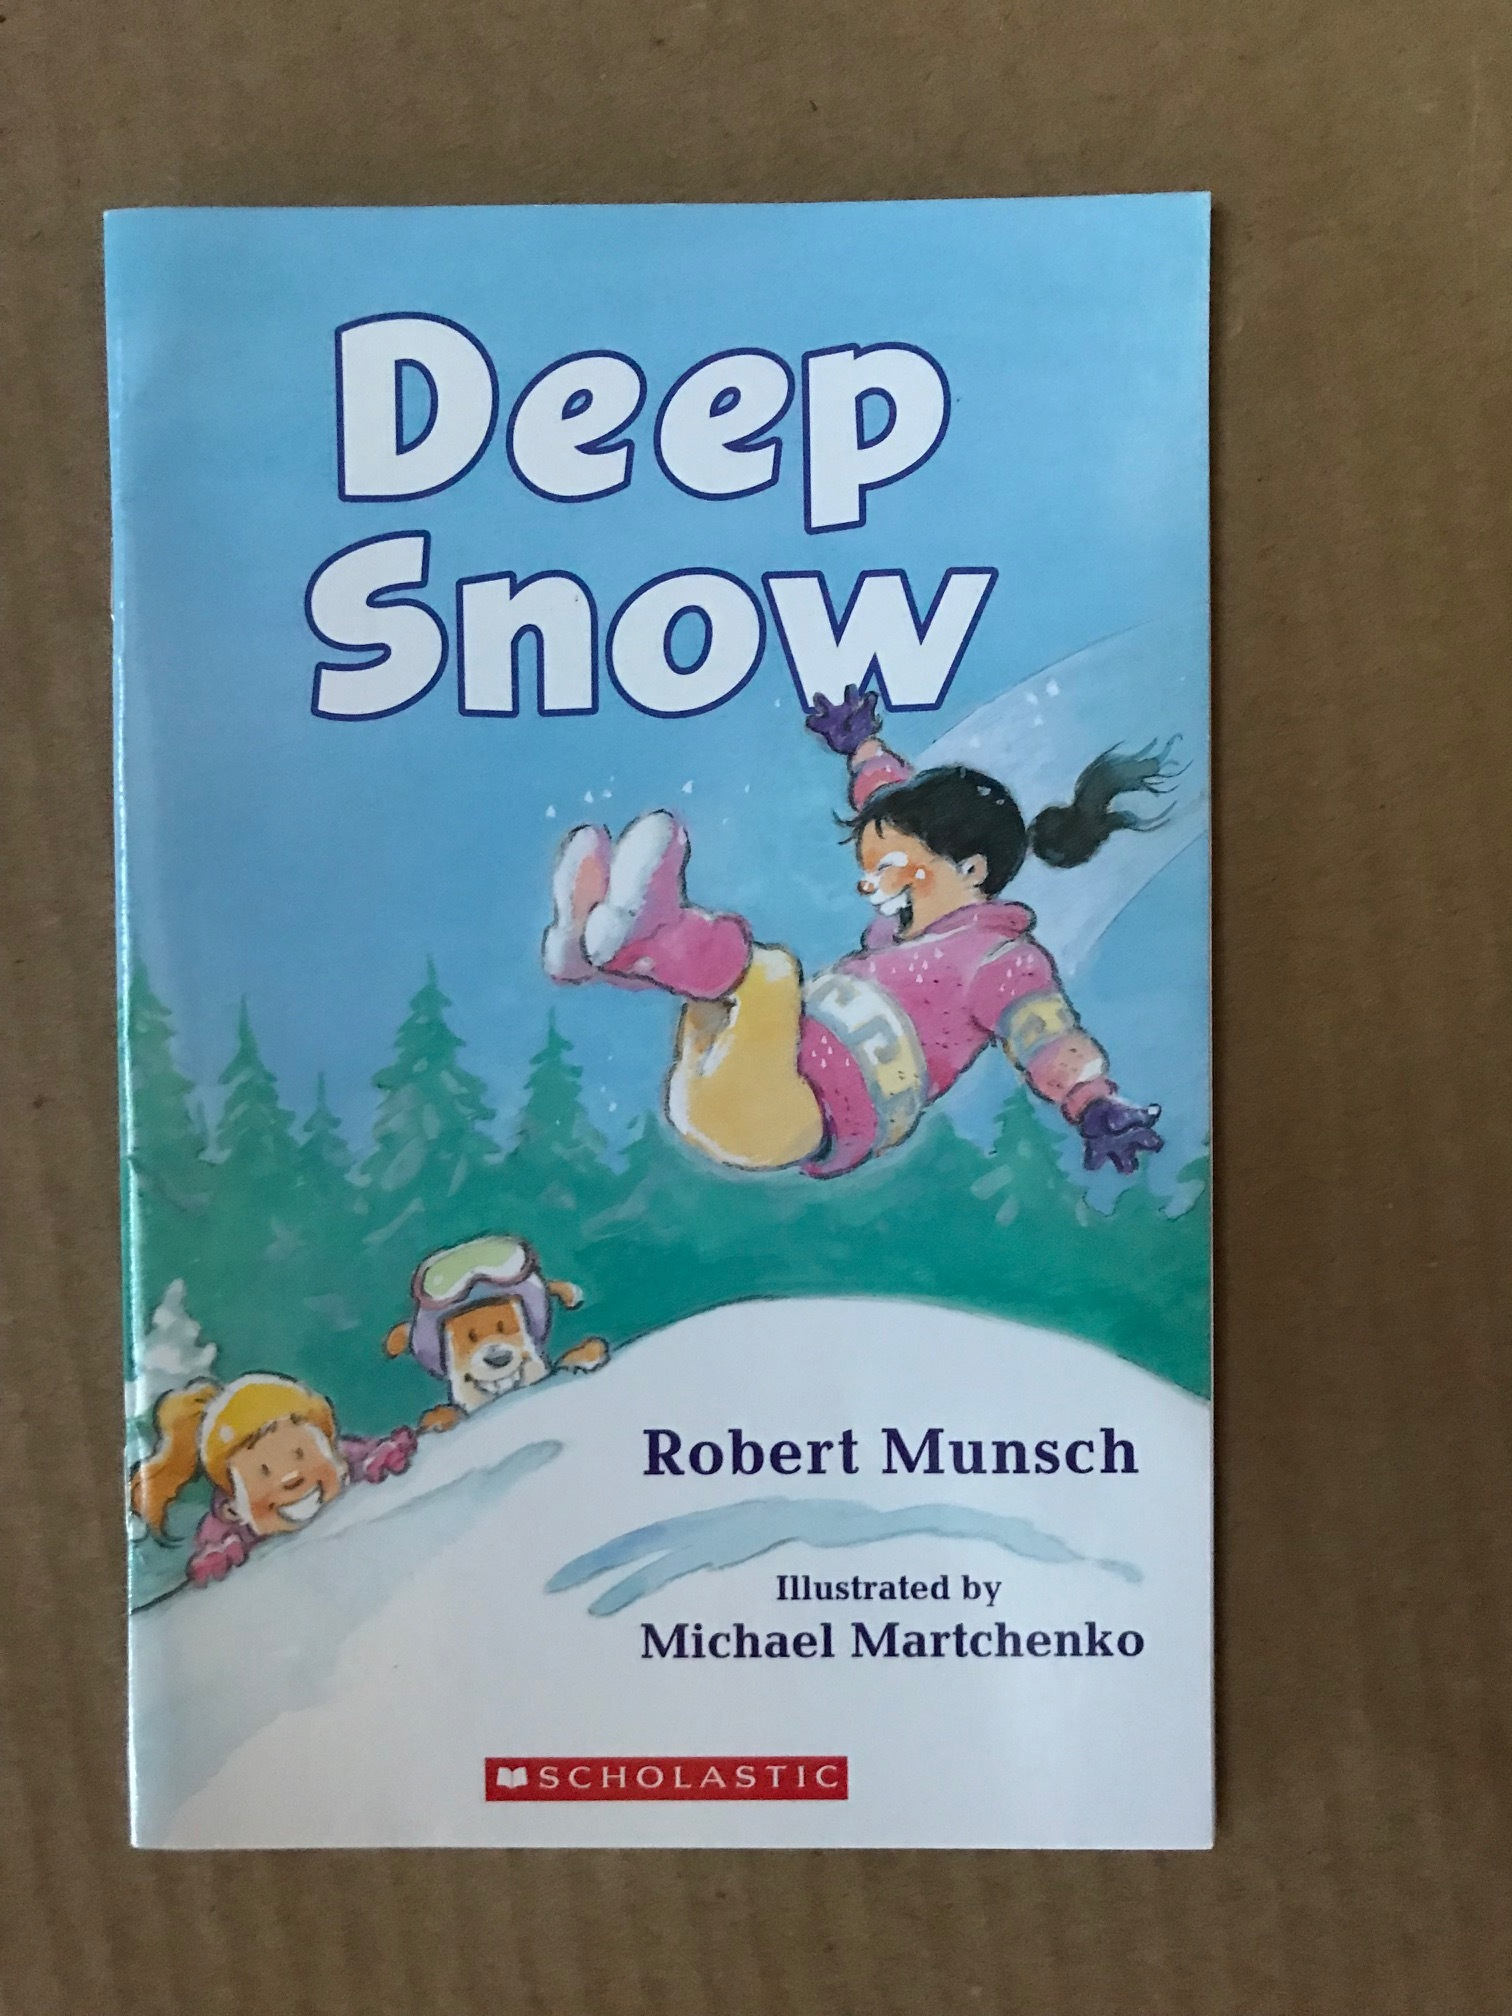 Book with or about snow (many Christmas books have snow in them)